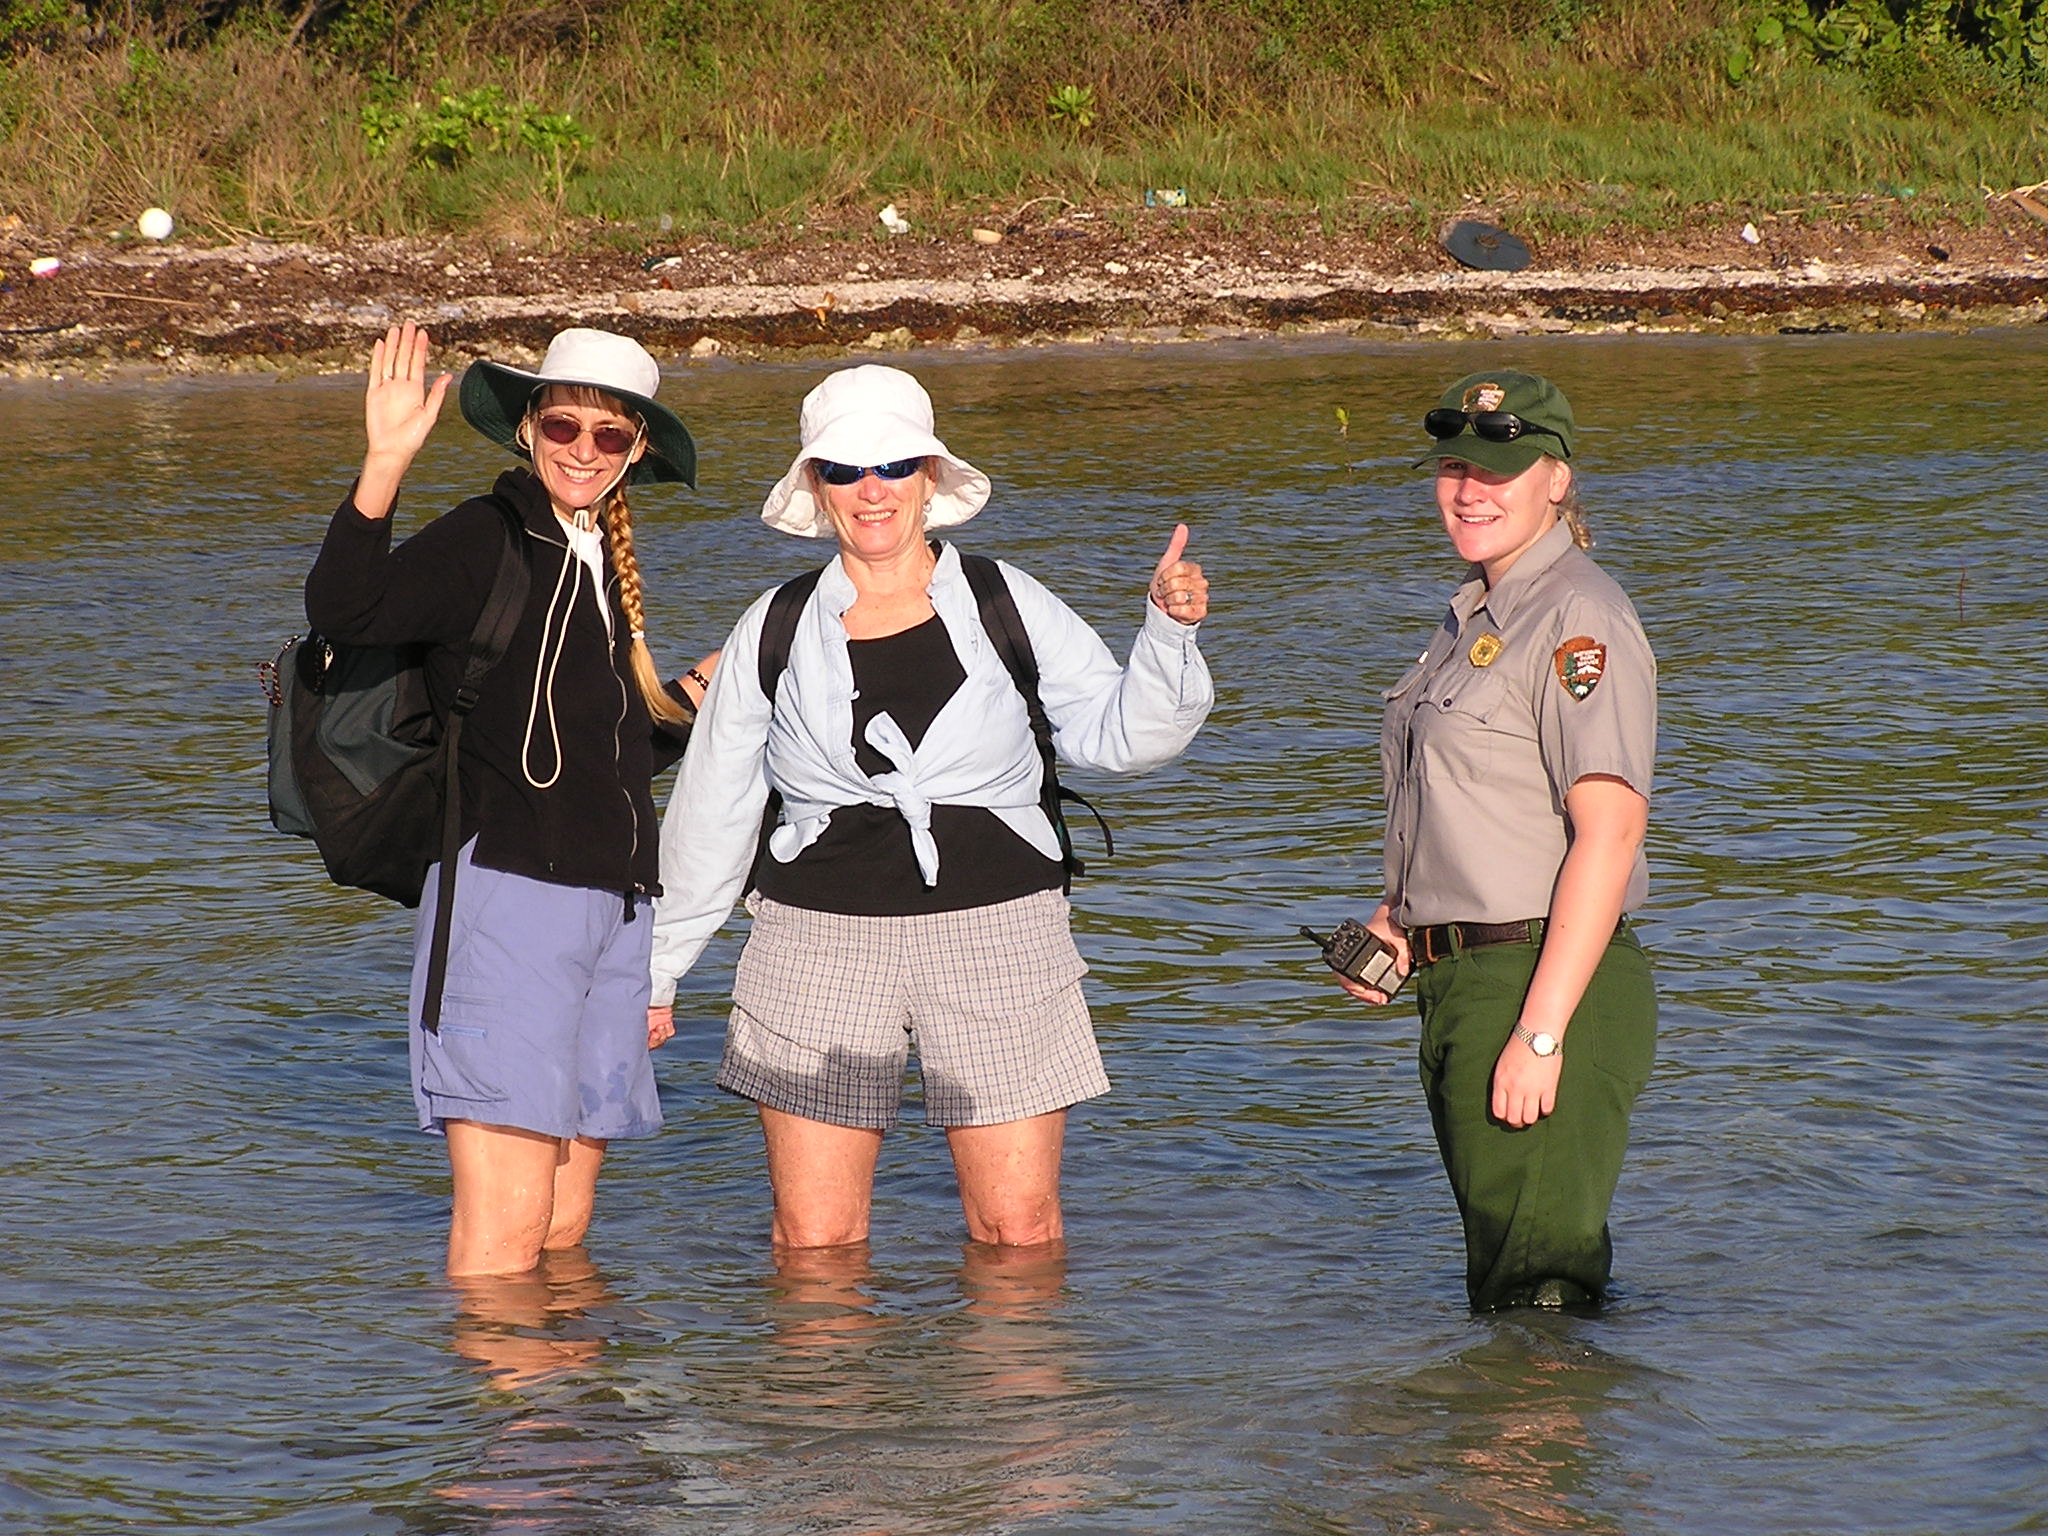 Access to reintroduction sites in Florida sometimes involved wading in shallow waters. Pictured are Joyce Maschinski, Diana Warr and Shelby Moneysmith at Biscayne National Park heading to look for Sargent's cherry palm.